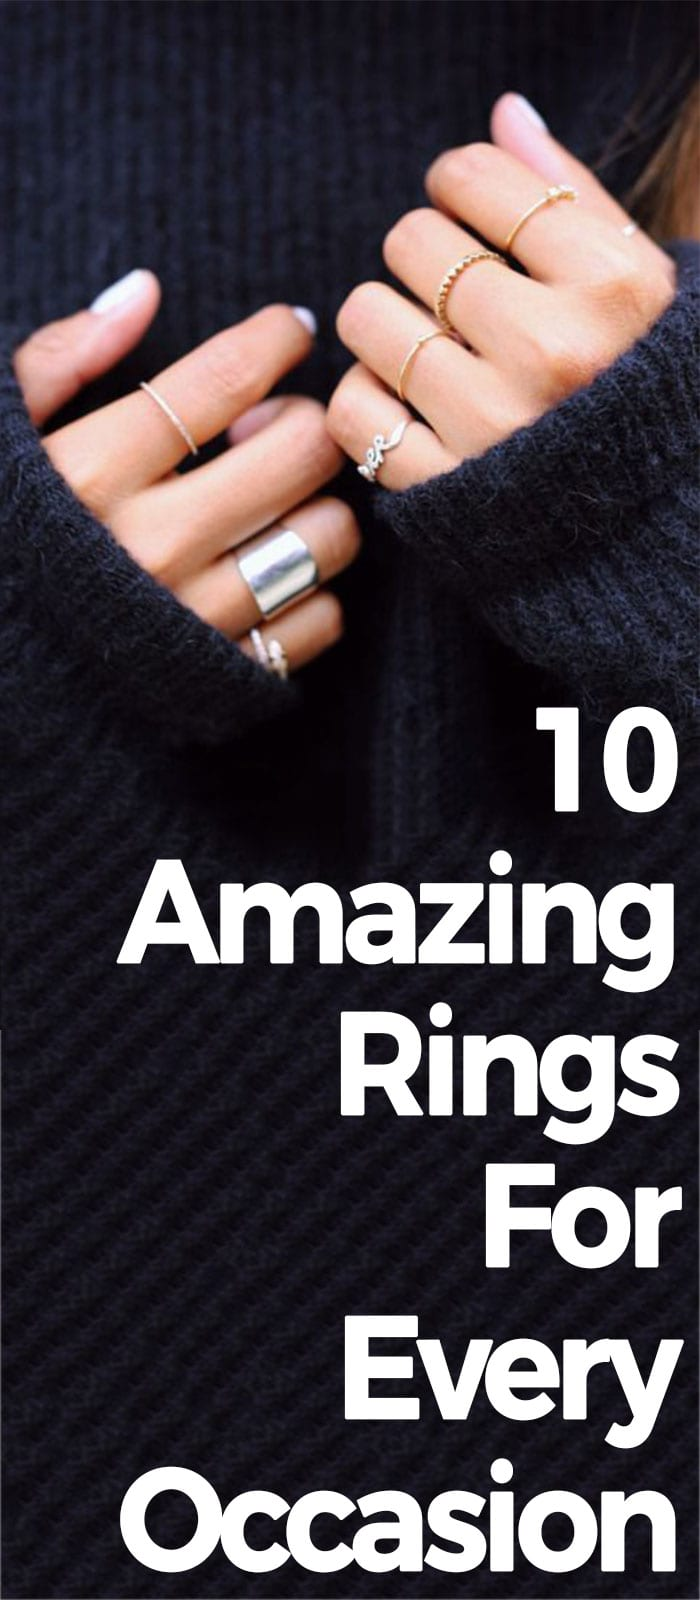 10 Amazing Rings For Every Occasion.